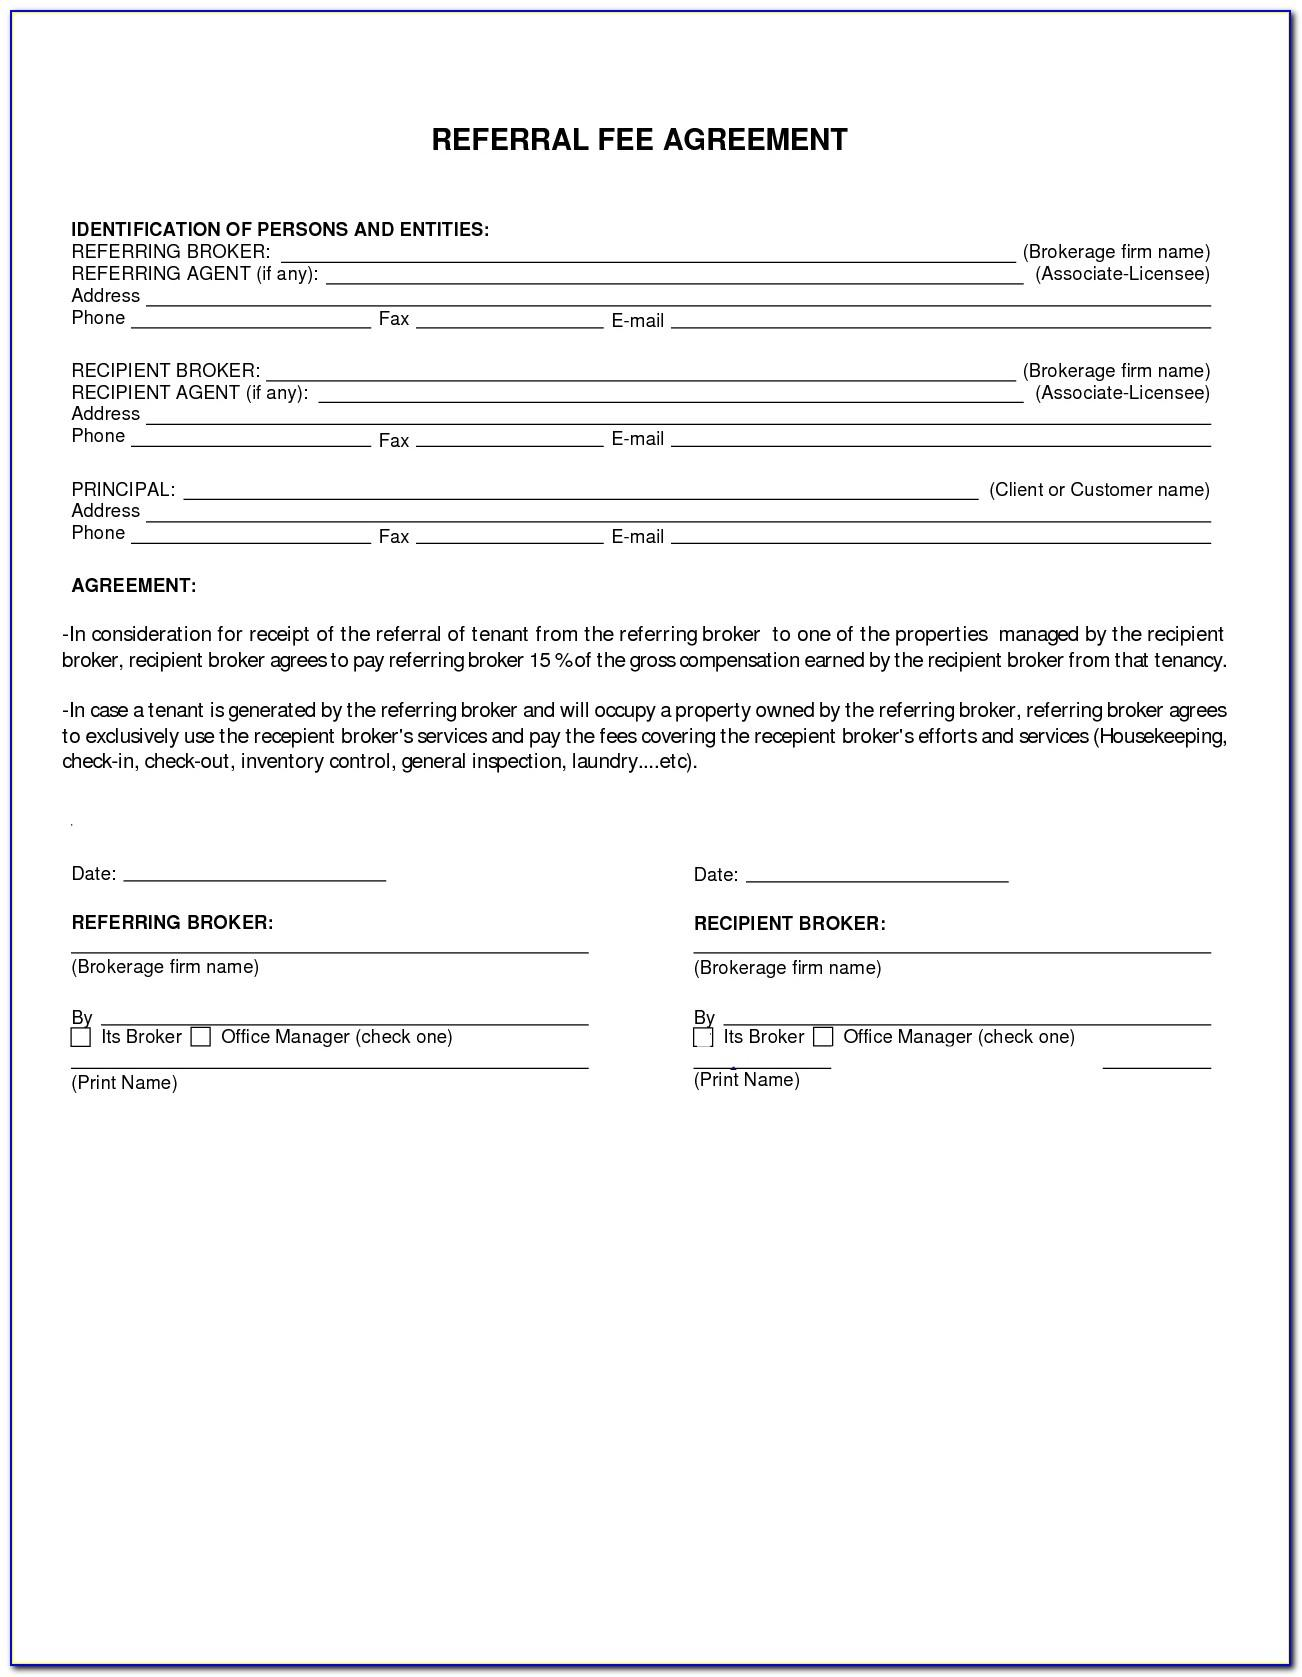 California Attorney Referral Fee Agreement Form